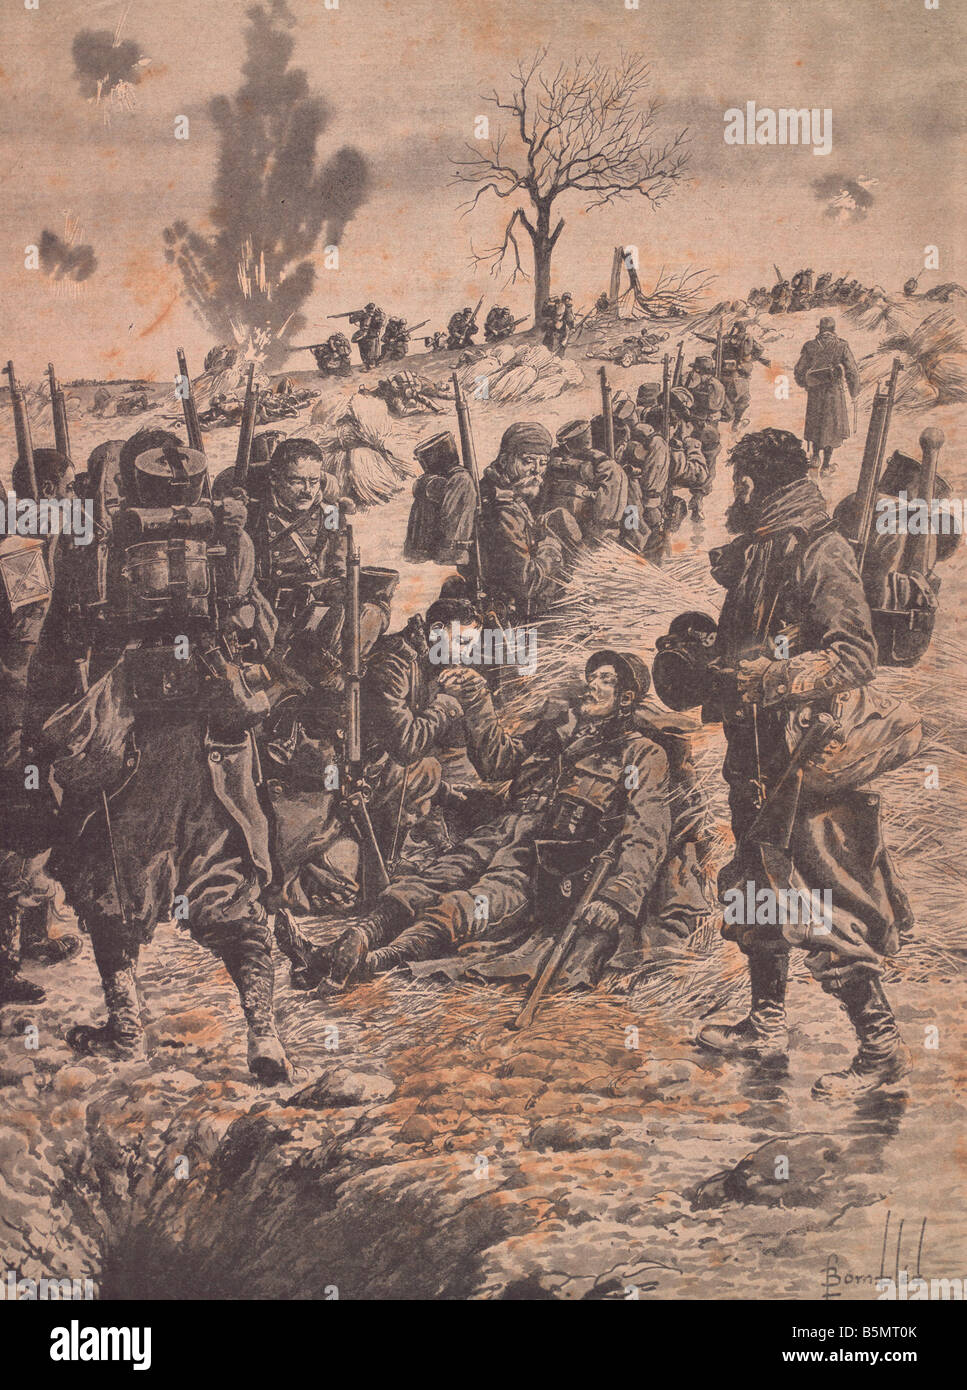 9FK 1915 1 0 A2 E Tribute to a fallen Fr soldier 1915 World War 1 France Hommage au lieutenant mort Magazine illustration - Stock Image